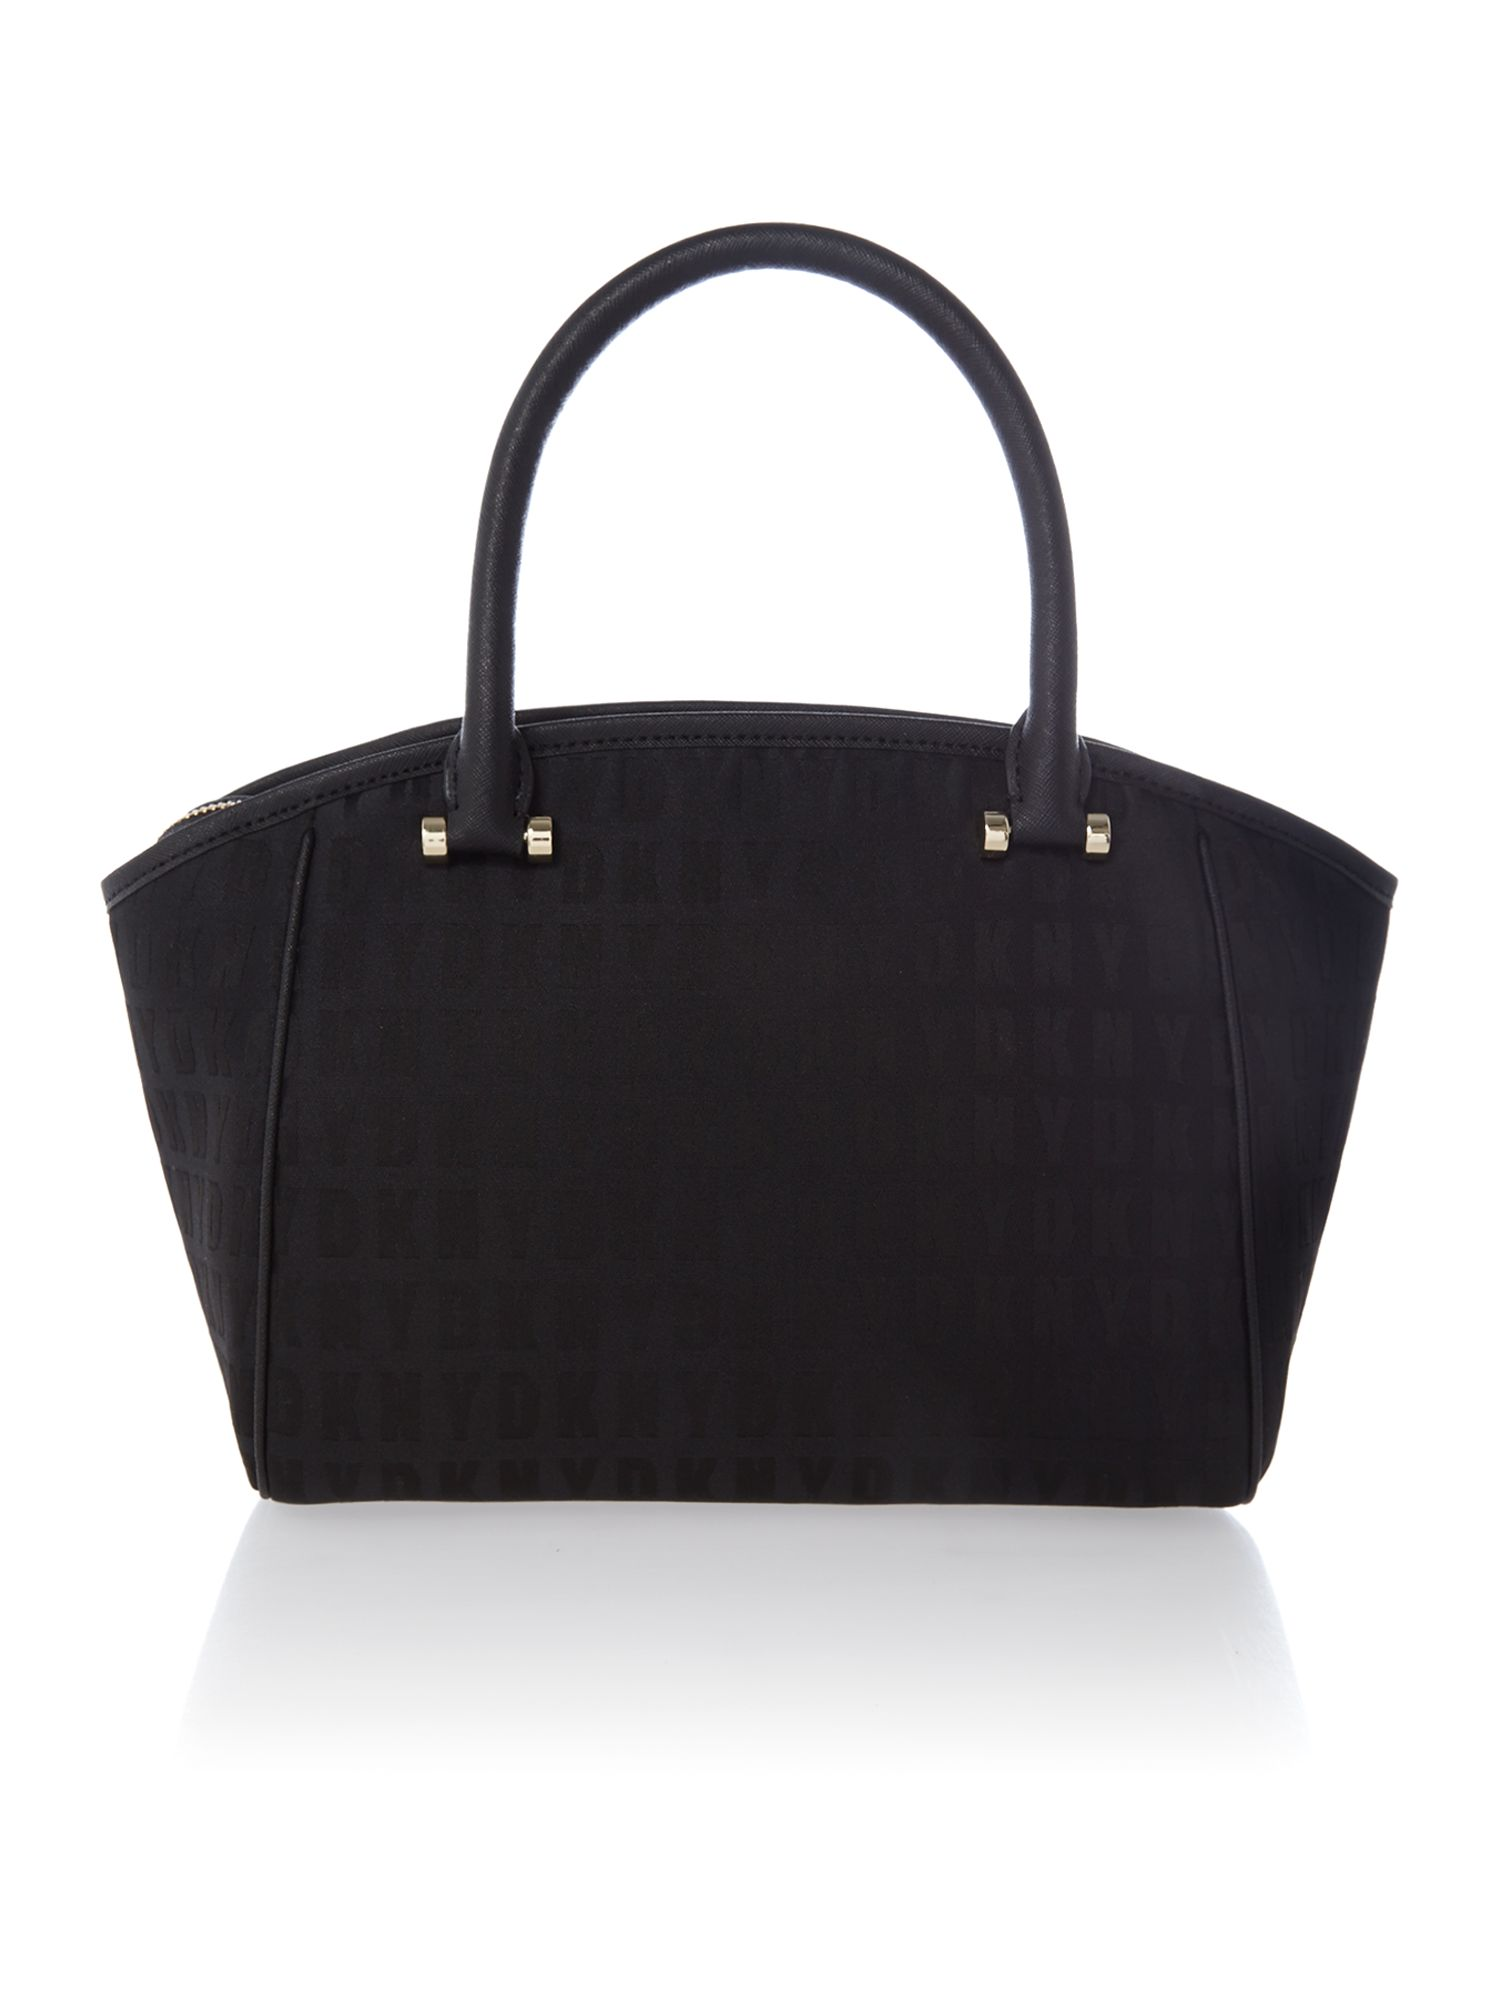 Black small satchel bag